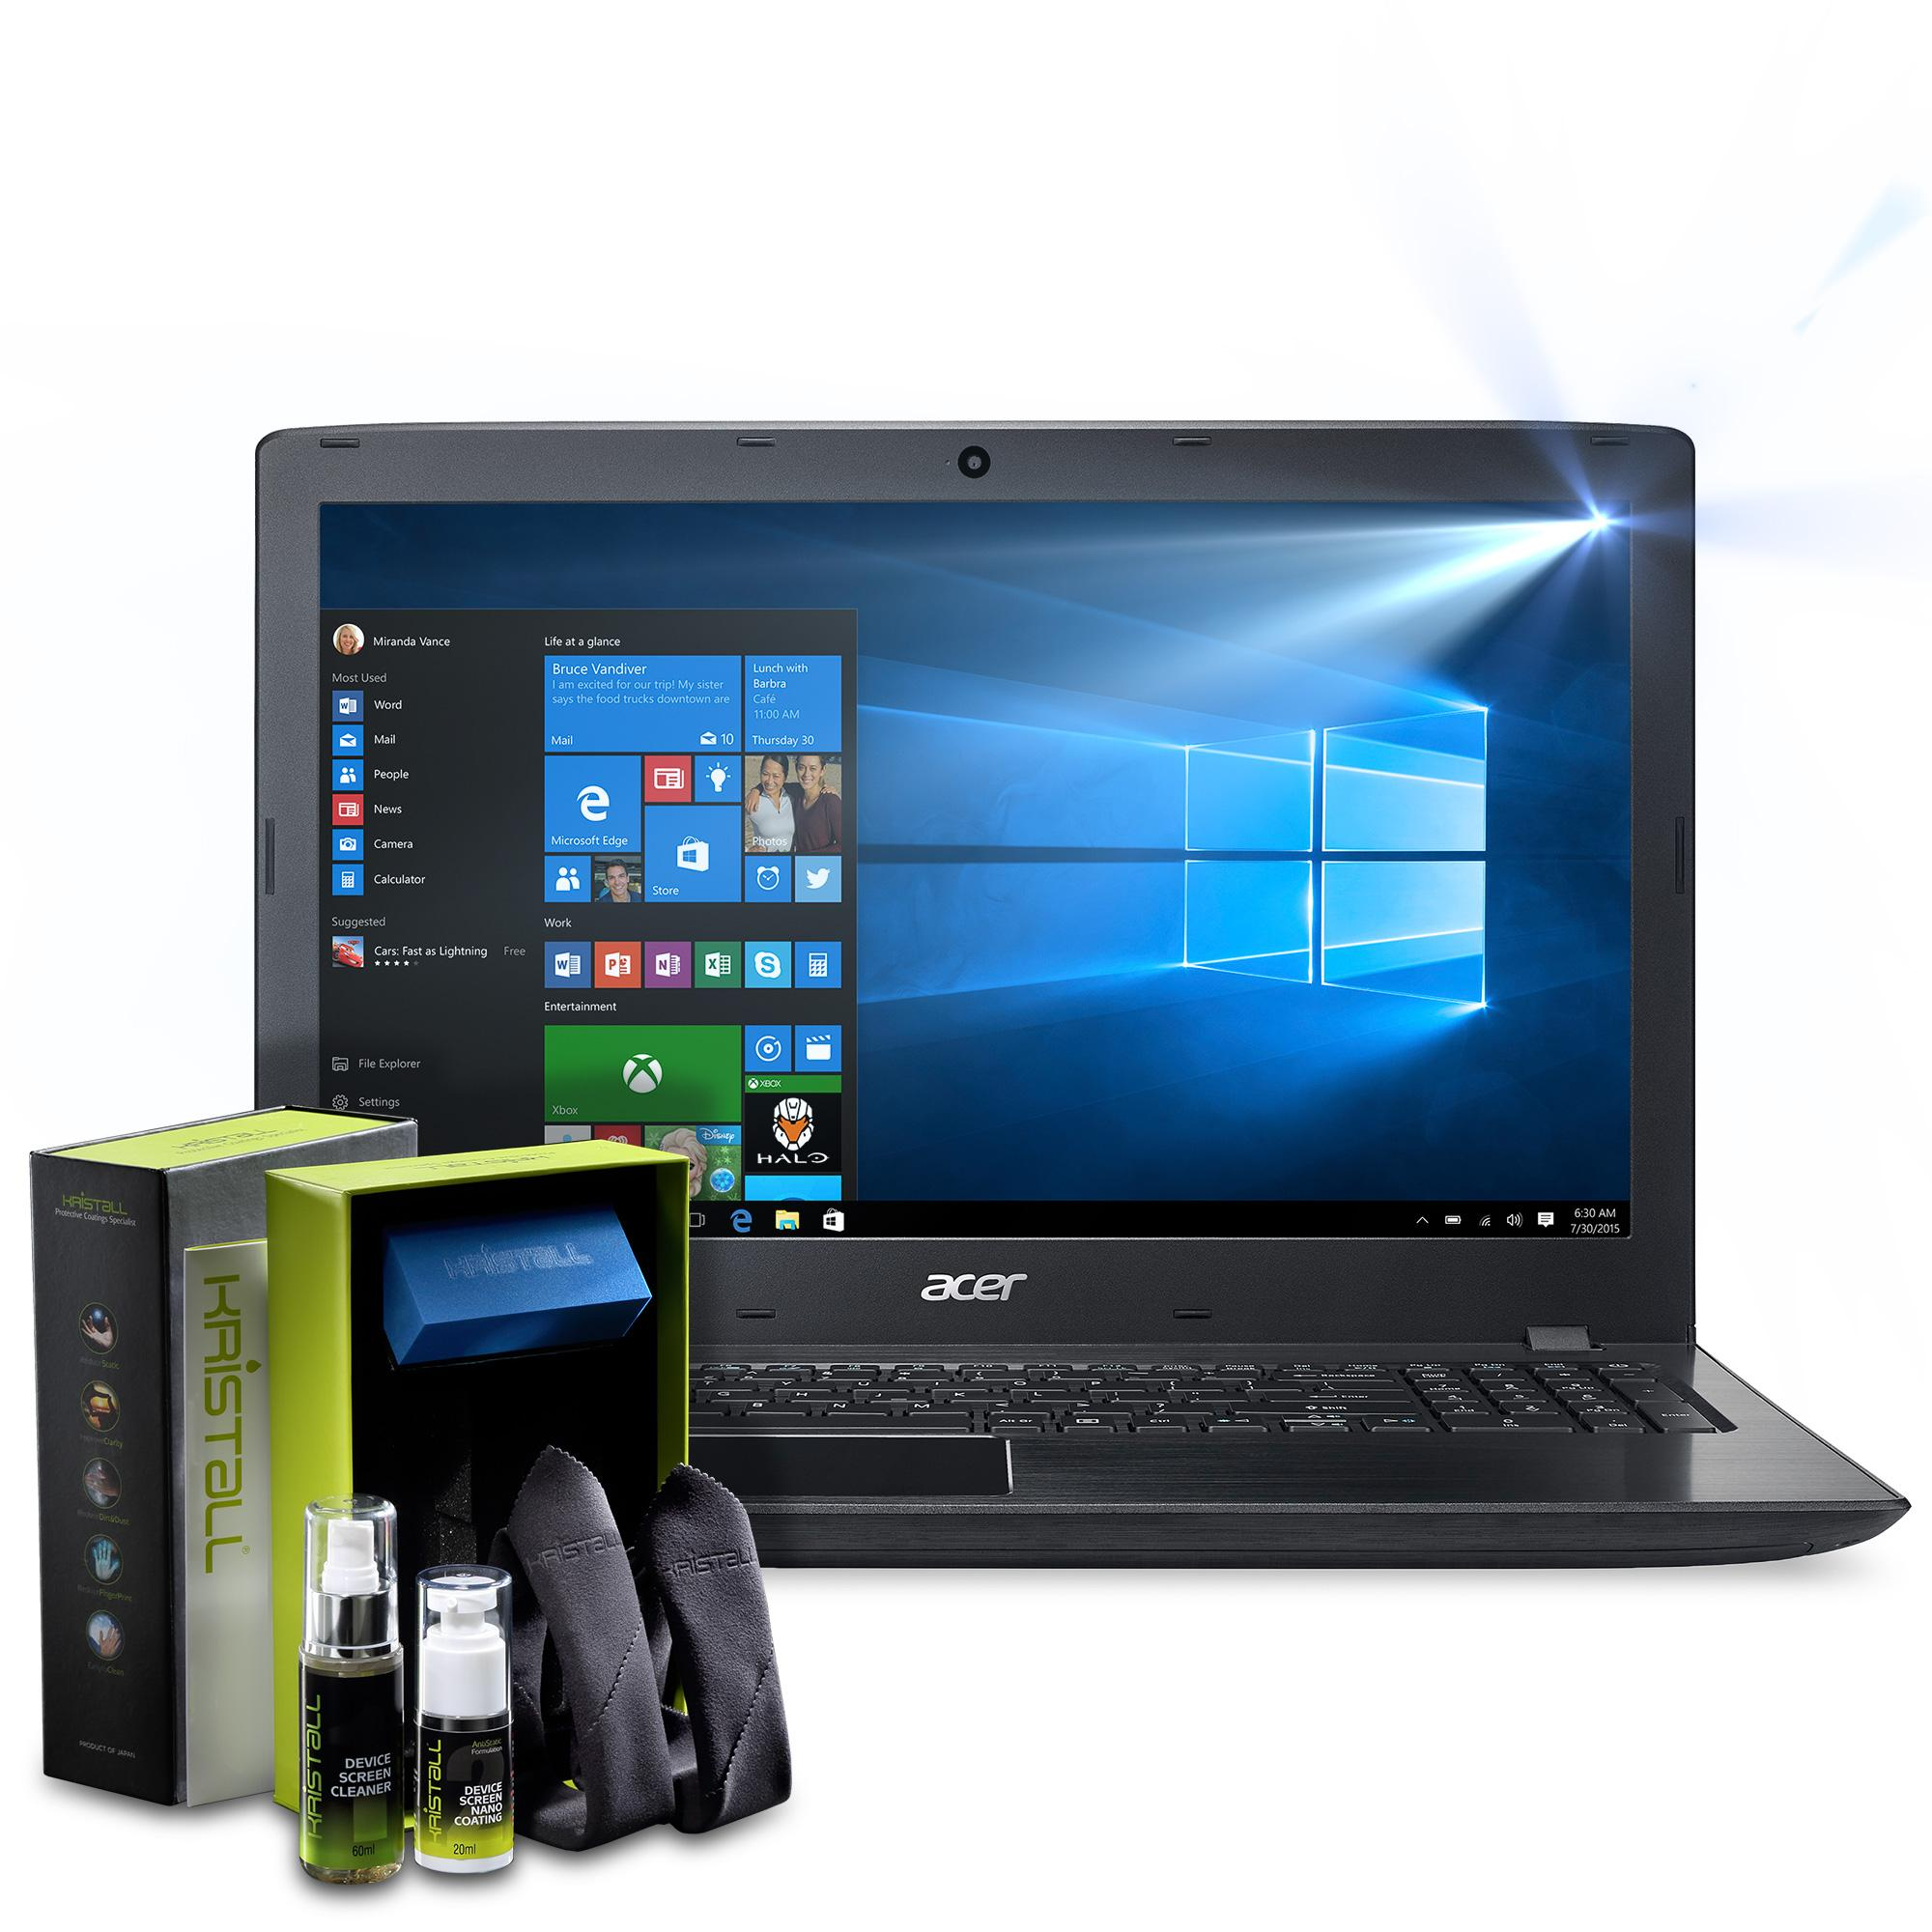 Acer Aspire E Laptop Screen Protector - Kristall® 9H Hardness Full Coverage Liquid Nano Coating Screen Protector for Laptop Screens (Bubble-FREE Screen Protector, EASY to Apply, Edge-to-Edge Full Coverage Protection)